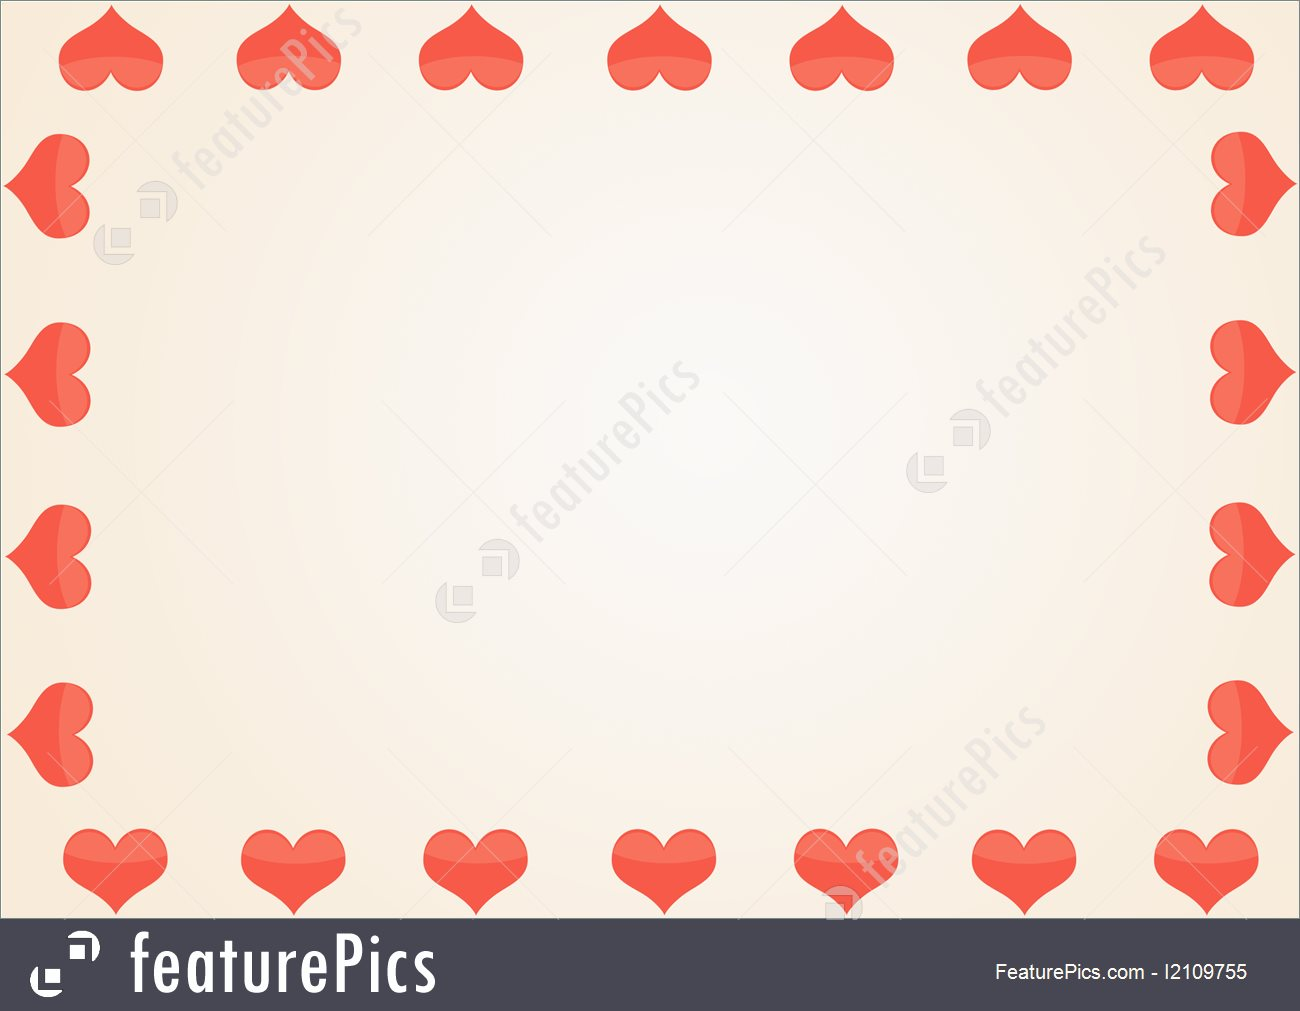 Templates: Framework From Red Hearts - Stock Image I2109755 at ...